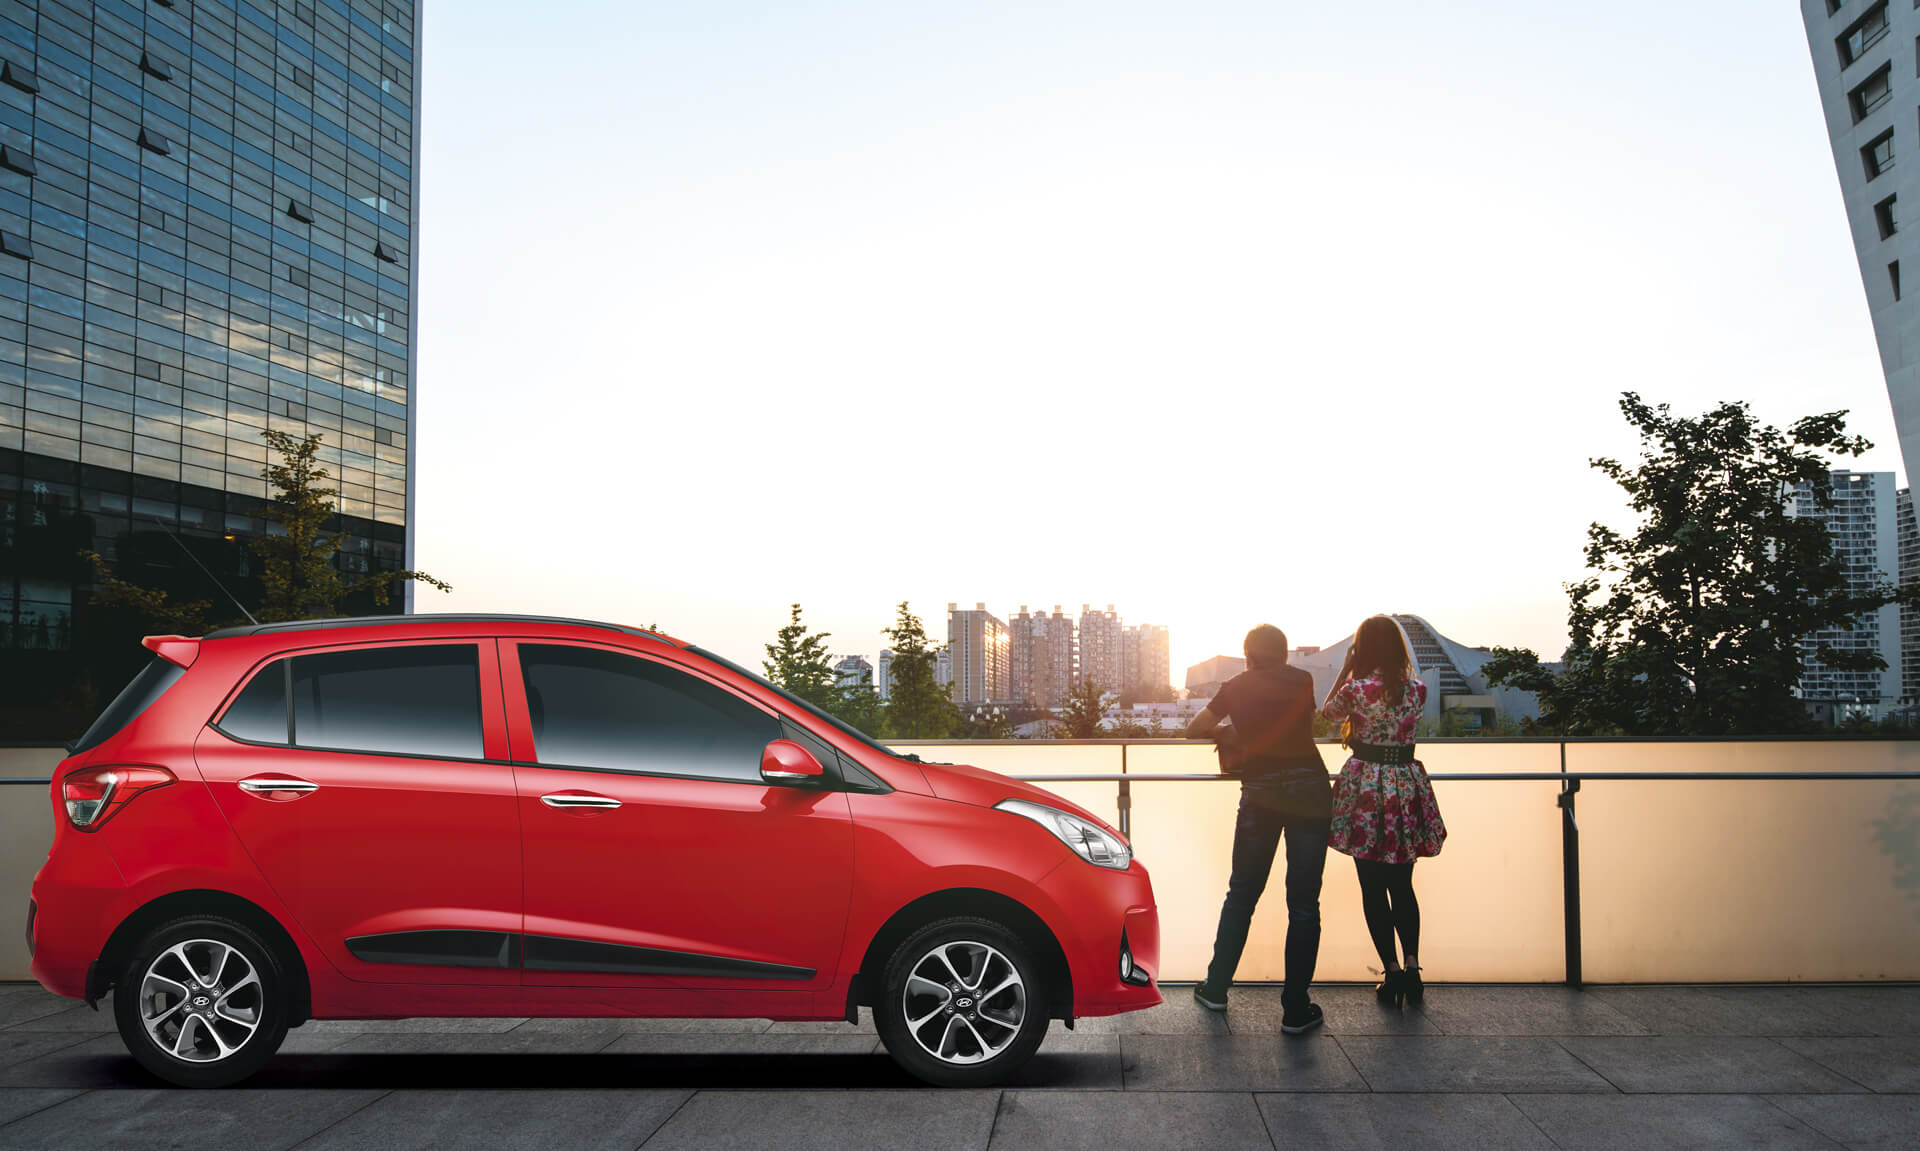 Hyundai Grand i10 Car Exterior Feature - Rear View